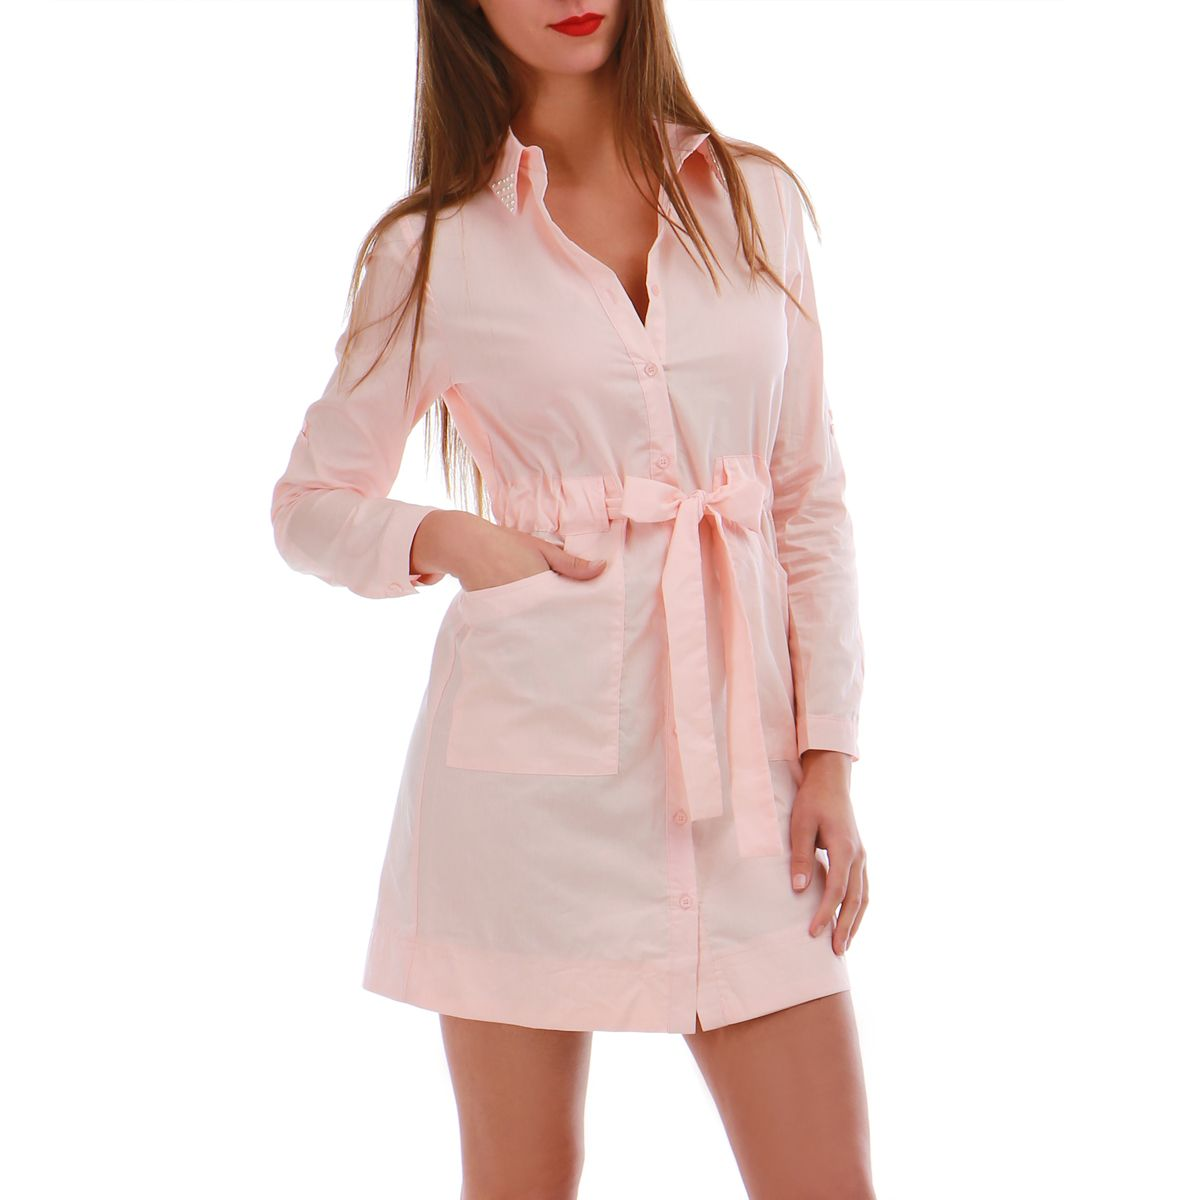 Robe chemise a perle